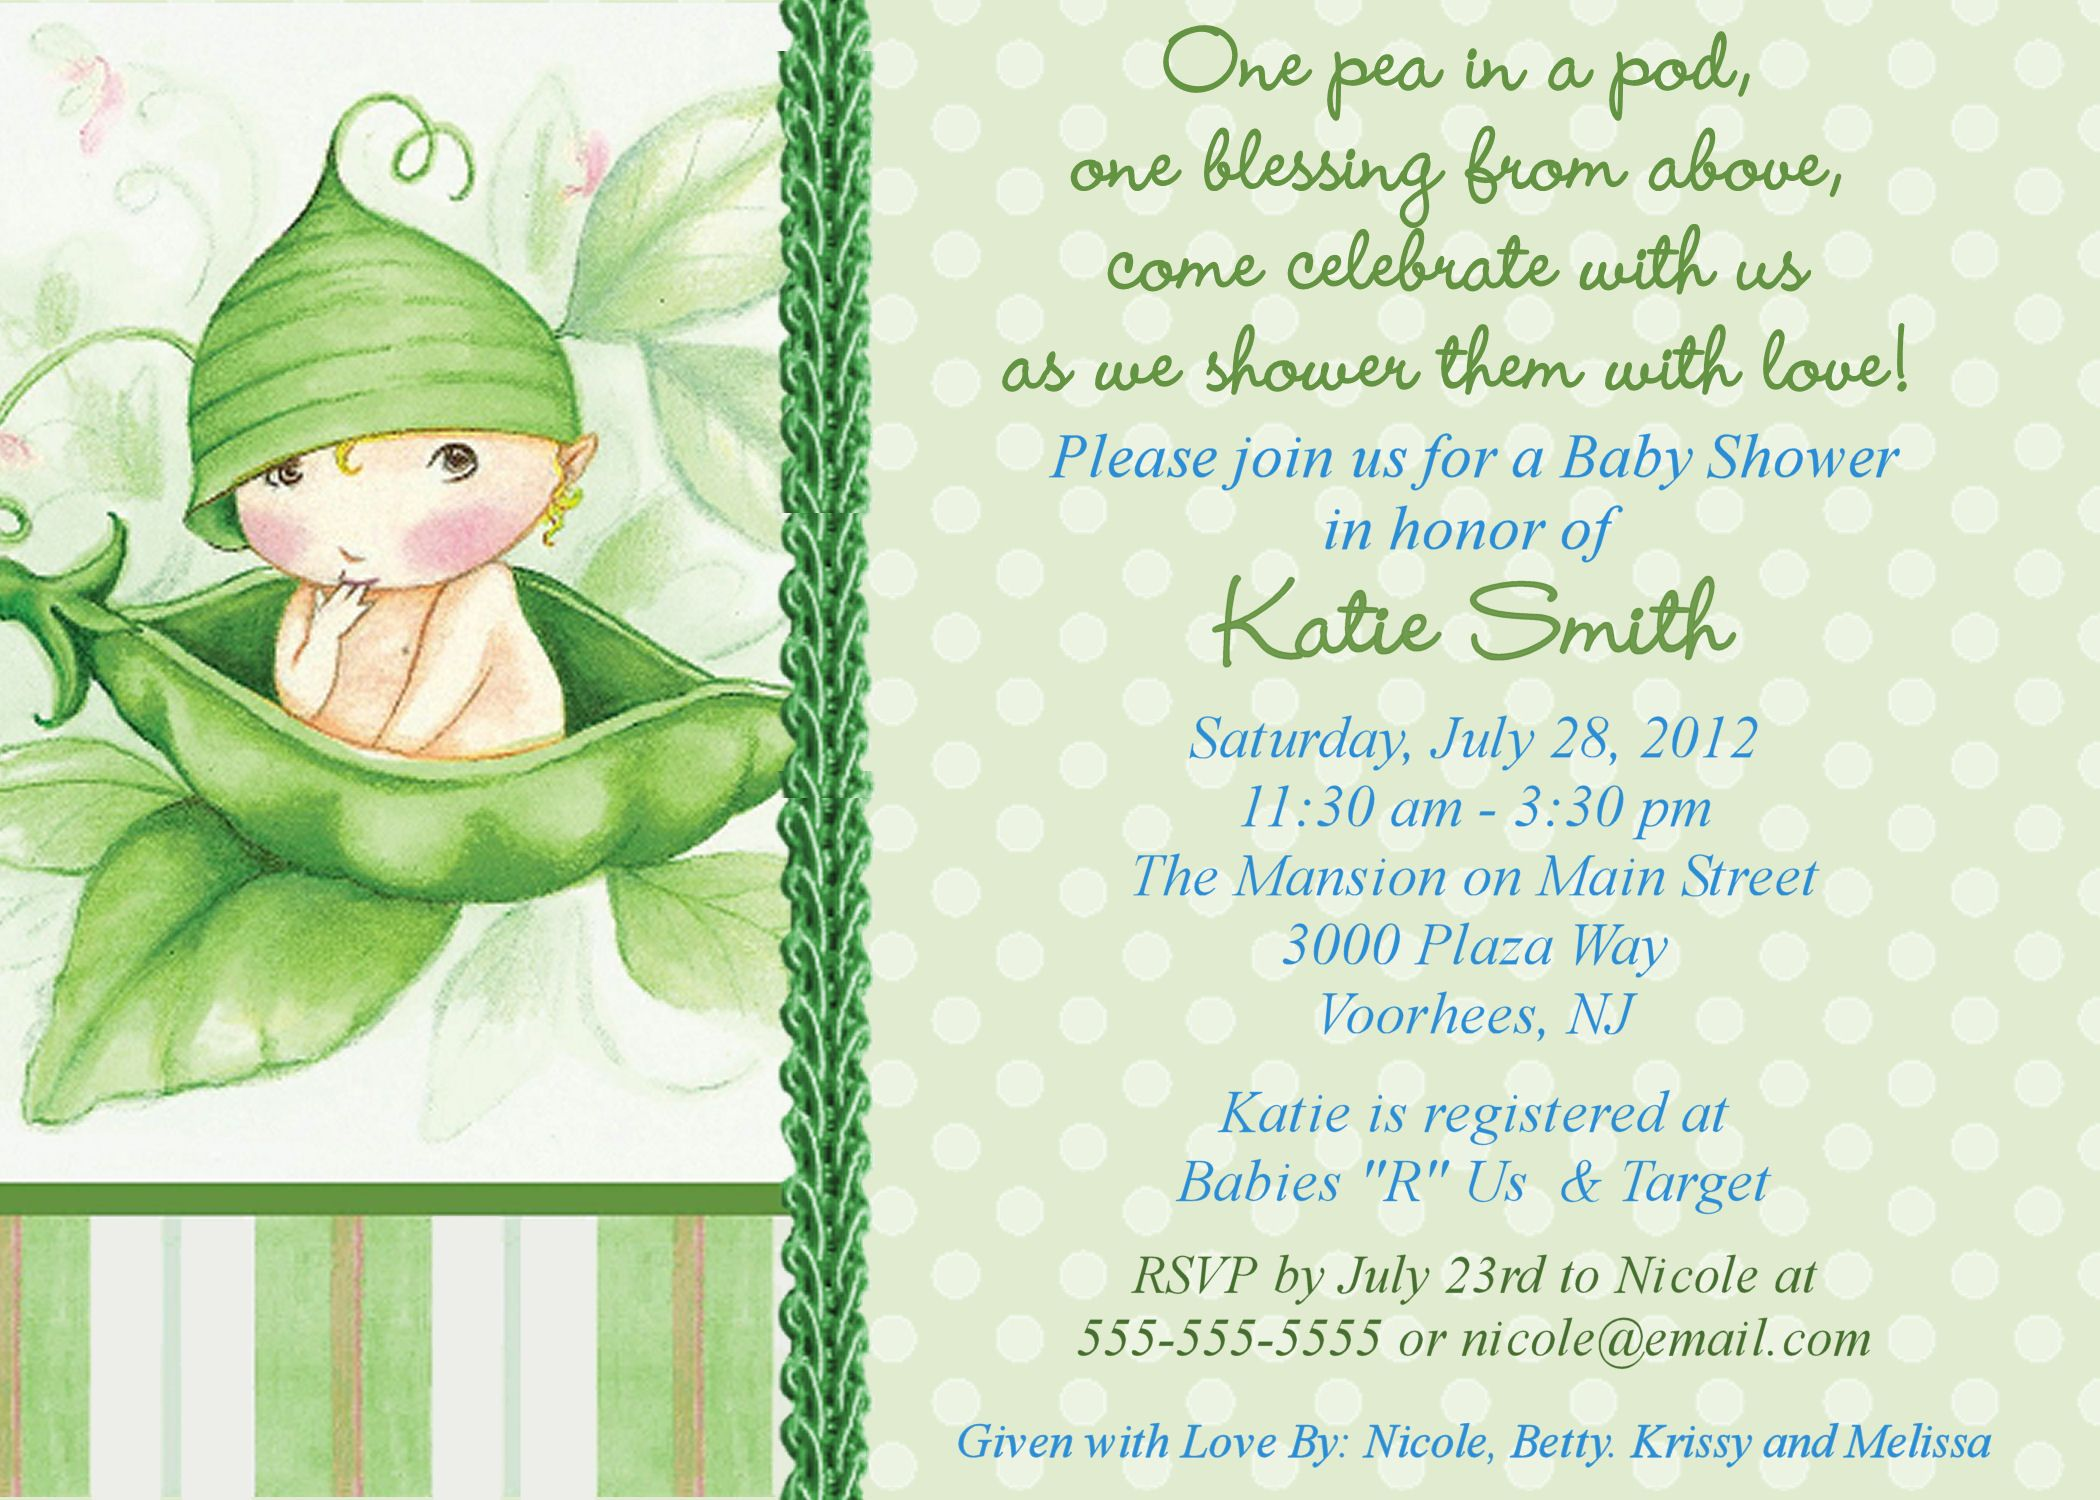 Image for Baby Shower Invitations Online Free Printable